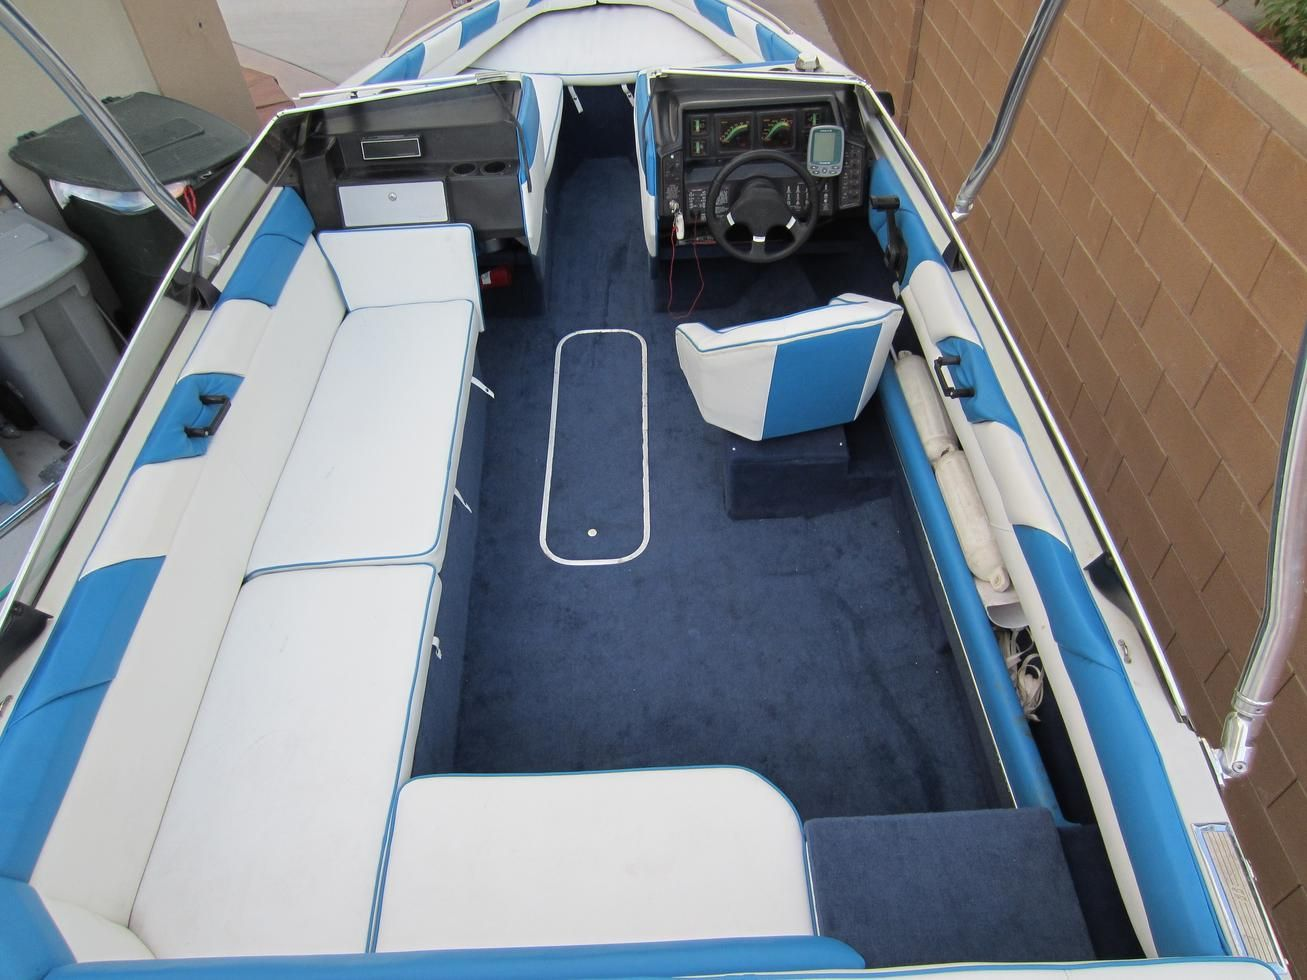 1989 bayliner capri with live well pics google search [ 1307 x 980 Pixel ]